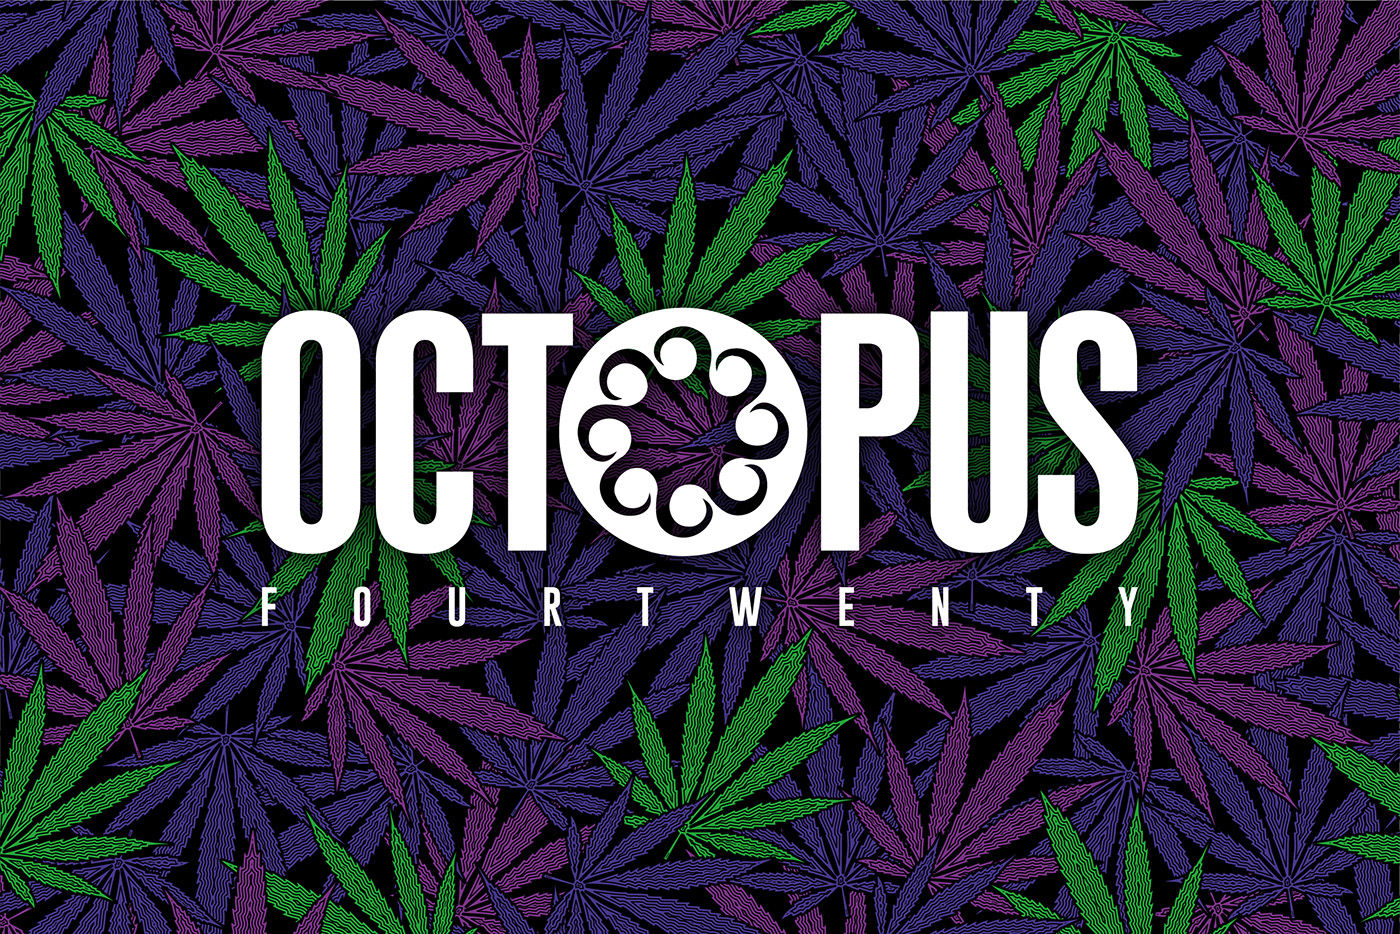 Octopus 420 fourtwenty capsule collection Limited Edition Release!